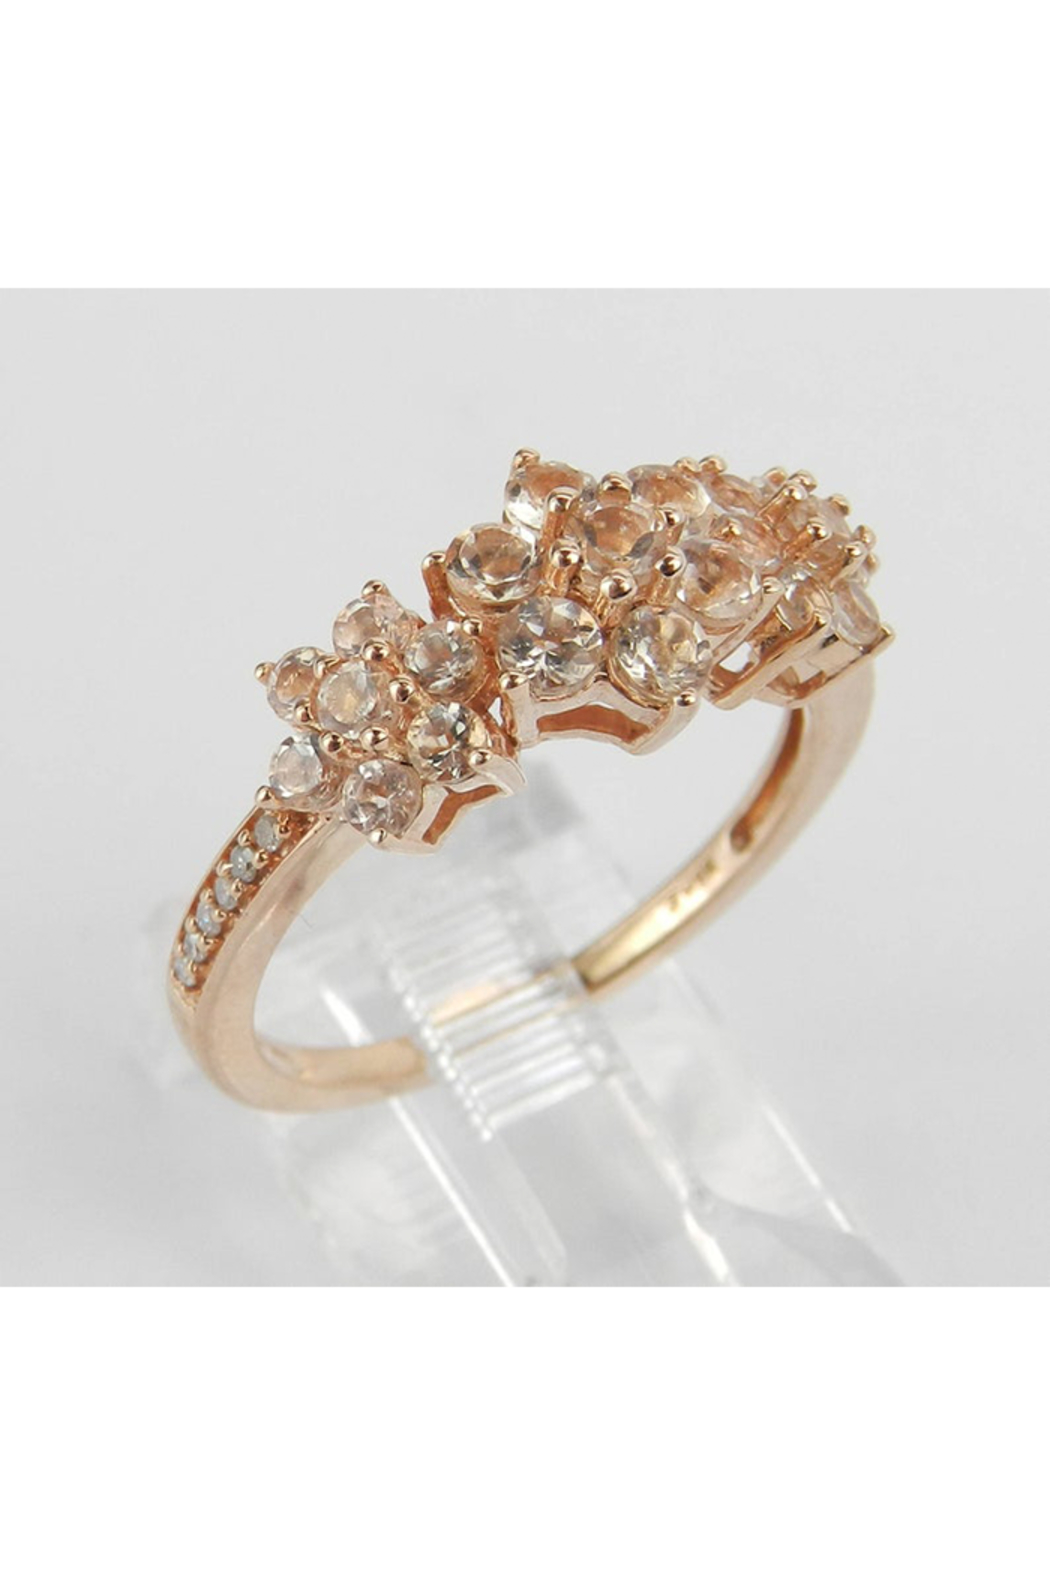 Margolin & Co Morganite and Diamond Flower Cluster Anniversary Ring Rose Pink Gold Size 7 - Front Full Image